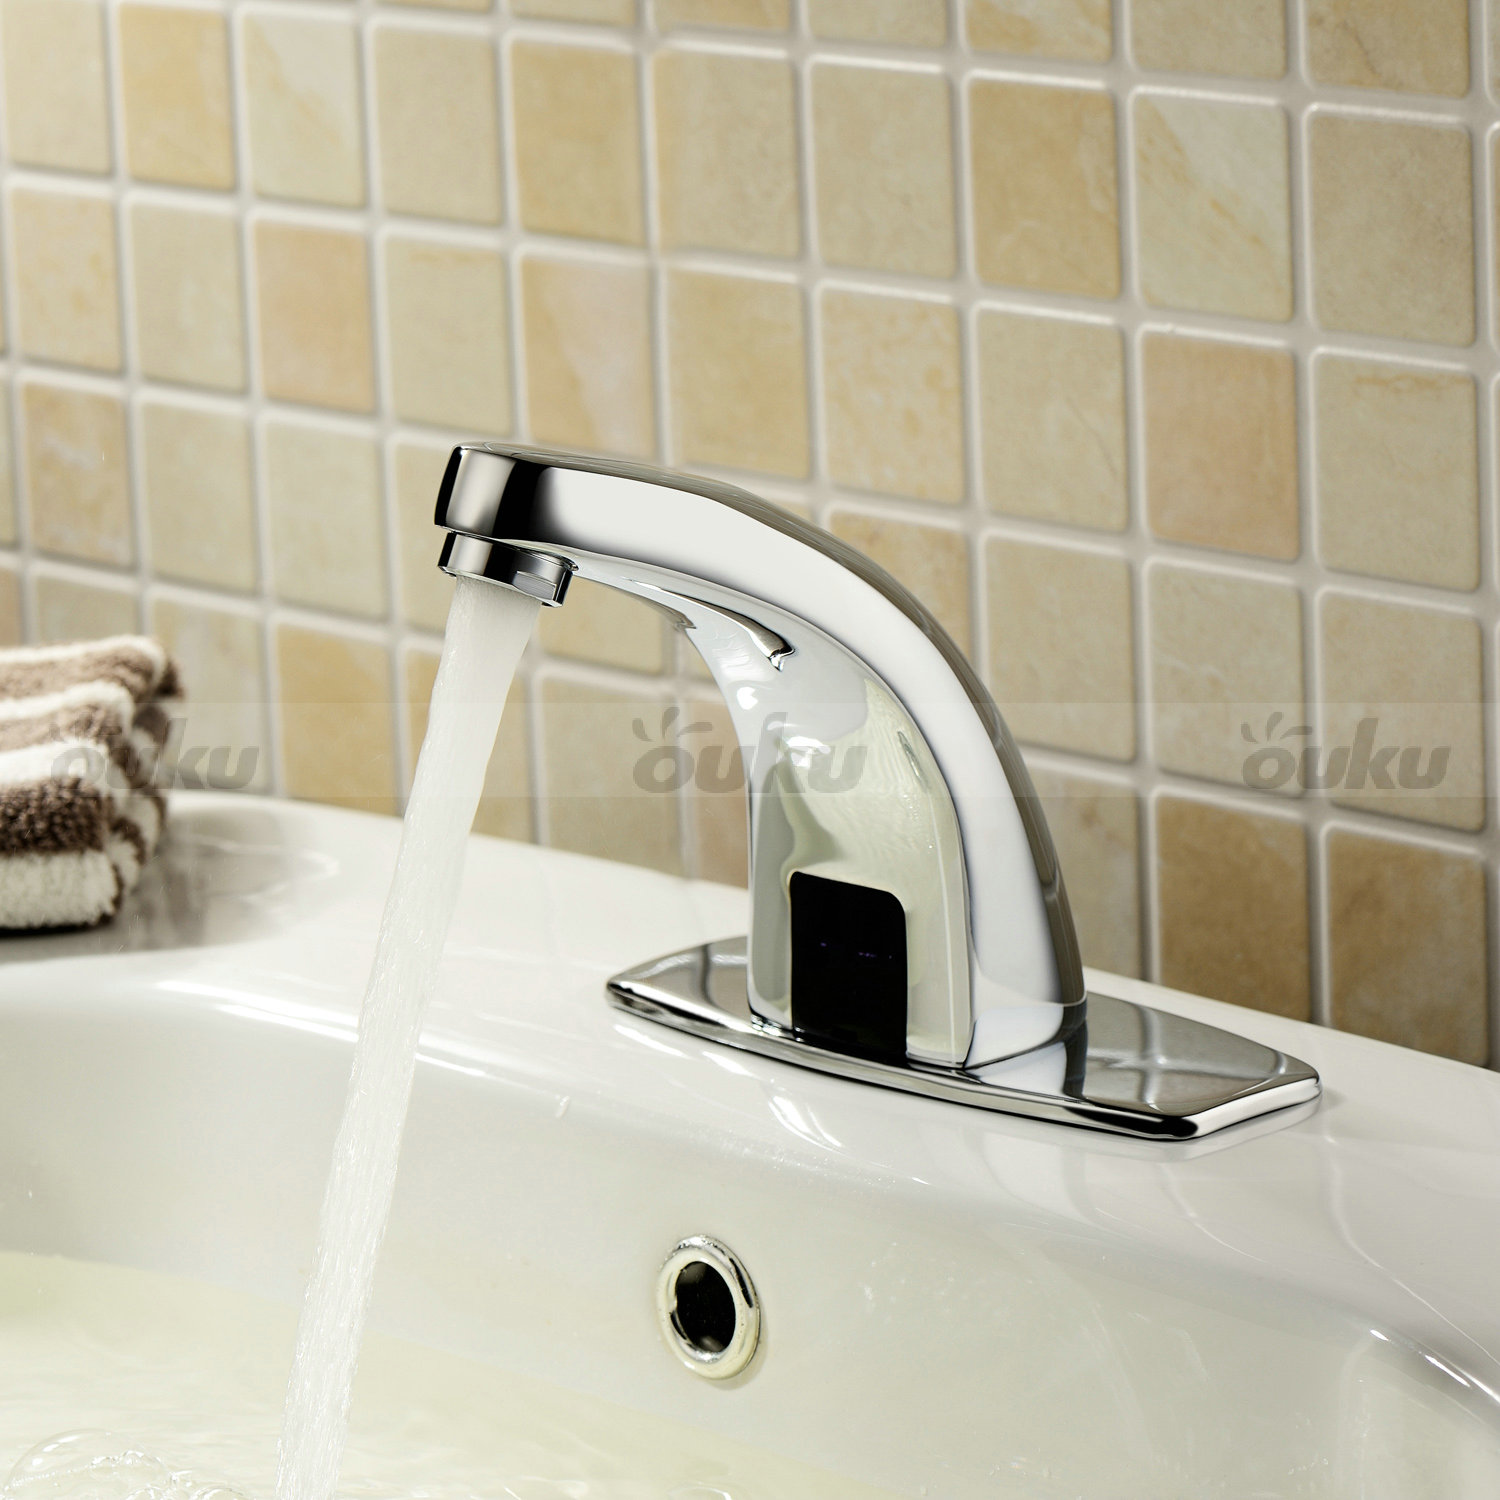 Brass automatic sensor faucet auto touchless electronic sink tap hand free ln01 ebay for Automatic bathroom sink faucets